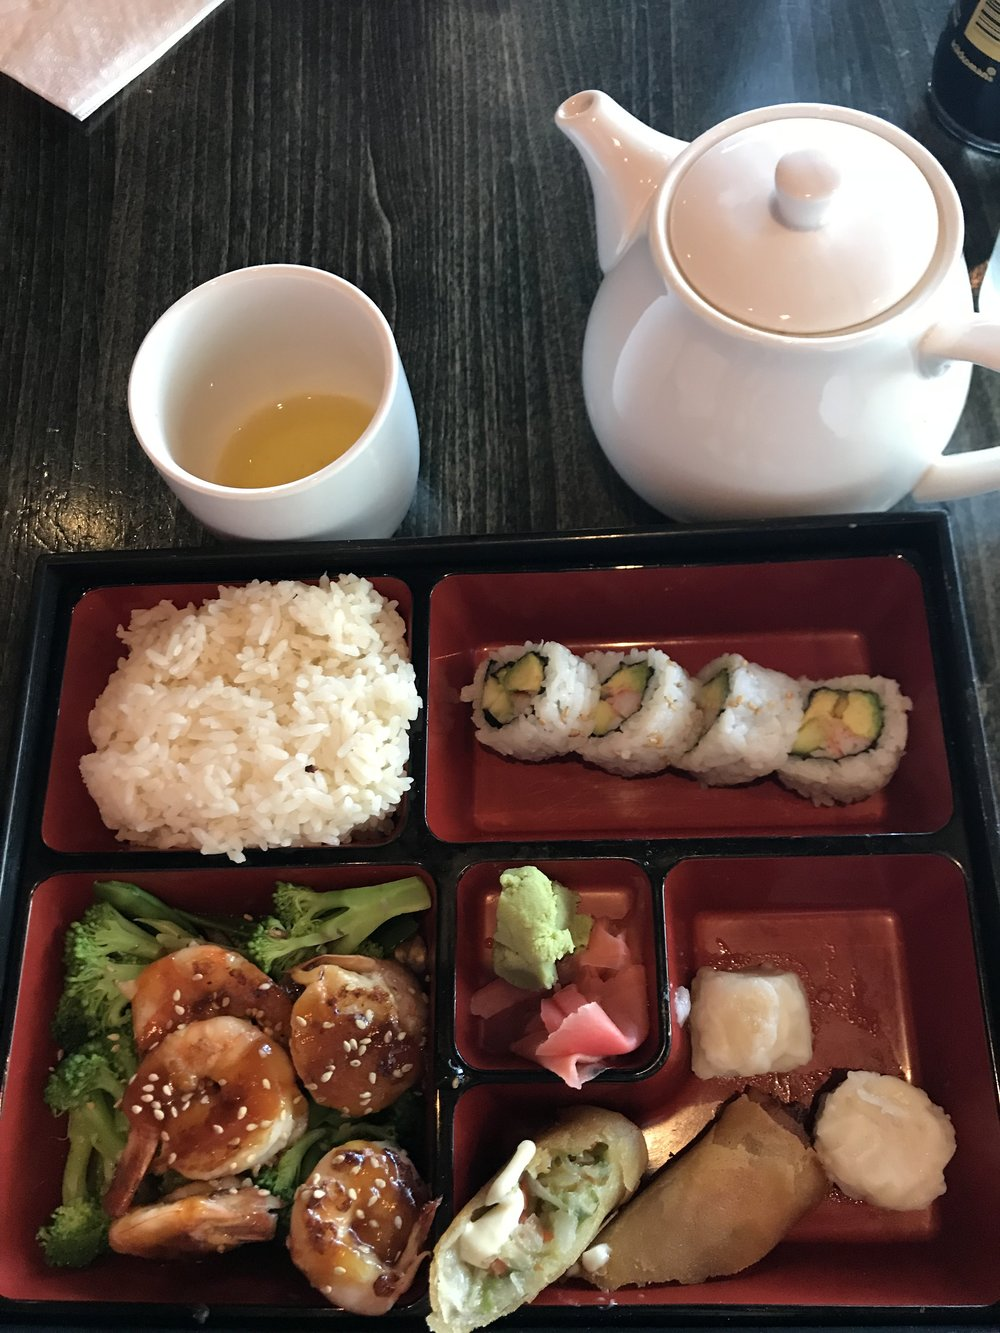 LUNCH - Went to JPan for their Teriyaki Shrimp Bento Box, which had Rice (which I did not eat), California Roll, Teriyaki Shrimp with Mixed Vegetables, Spring Roll, and Shrimp Dumplings. DELICIOUS!